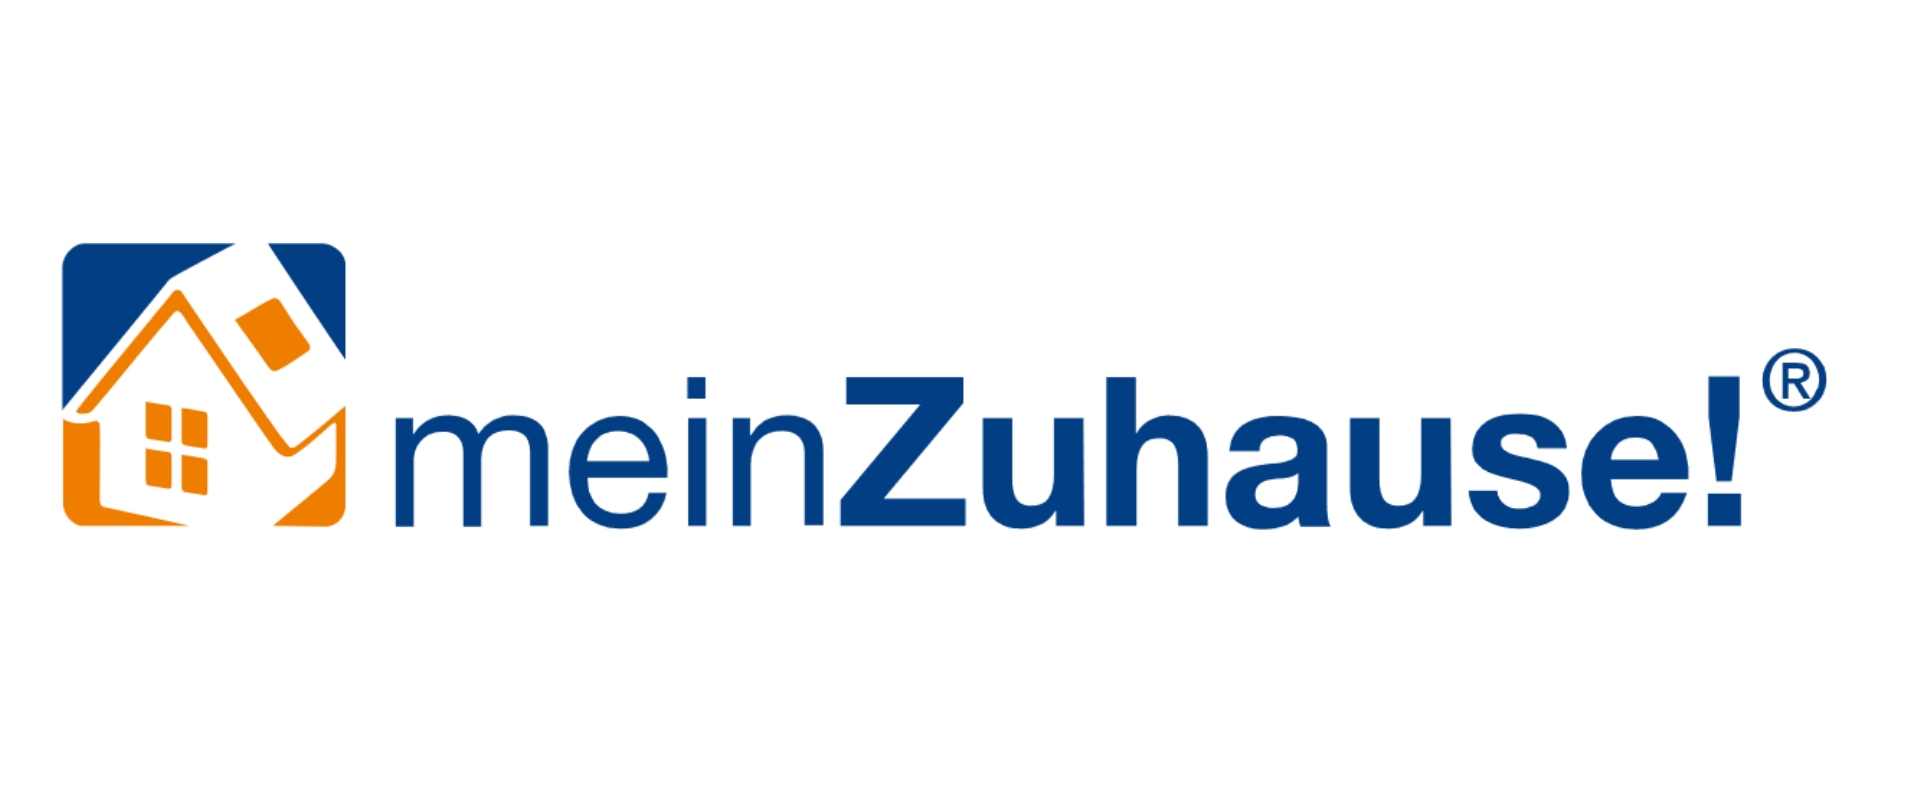 mein-zuhause-inn-salzach-forum-altoetting-logo-1920x800